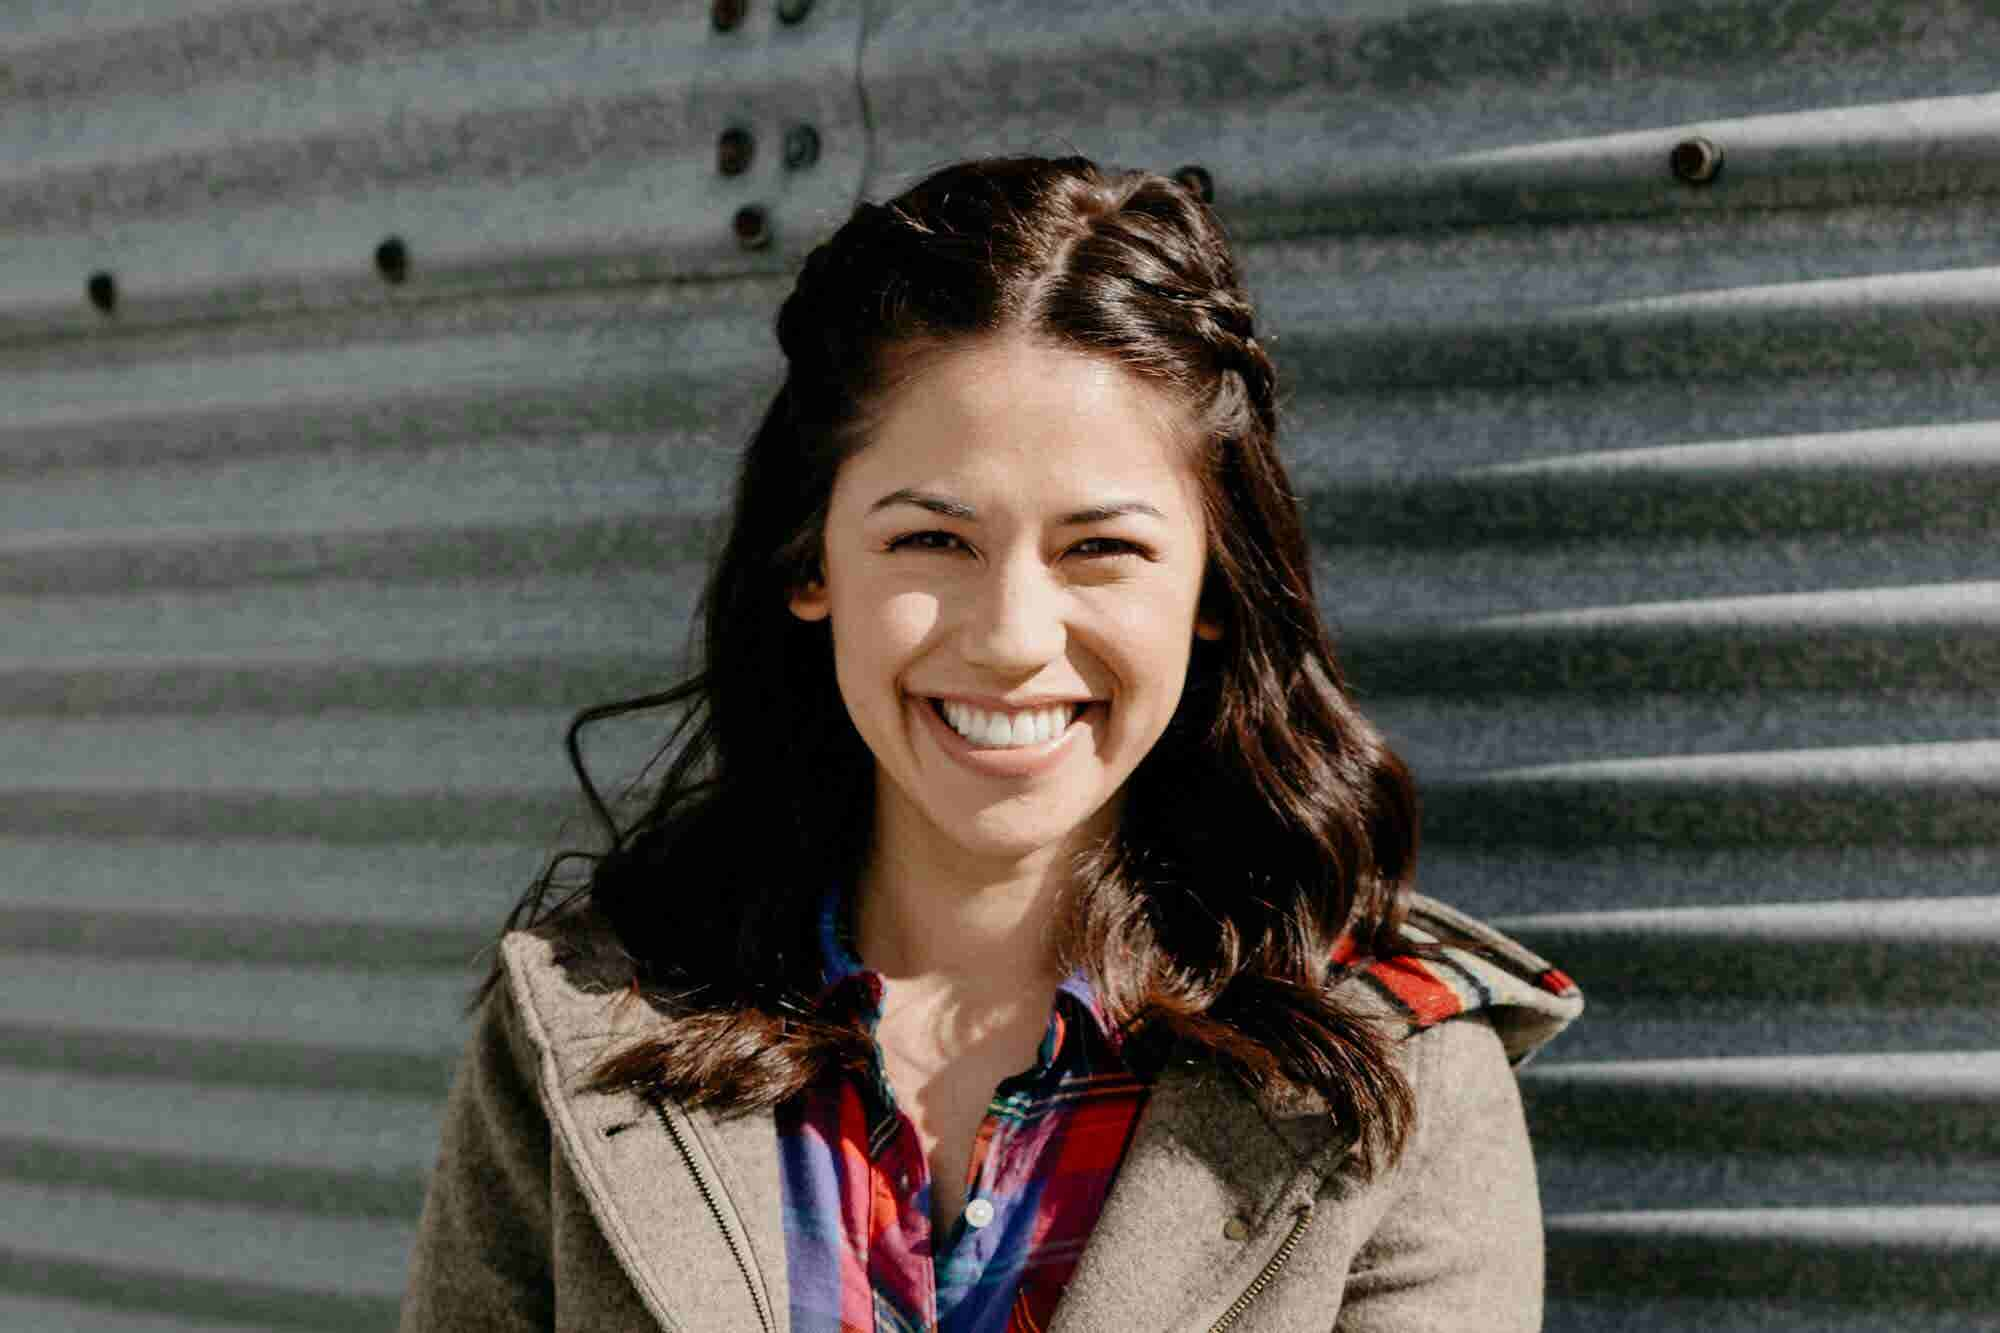 Food Network's Molly Yeh Shares How She Built Her Blog Into a Growing Farm-to-Table Empire